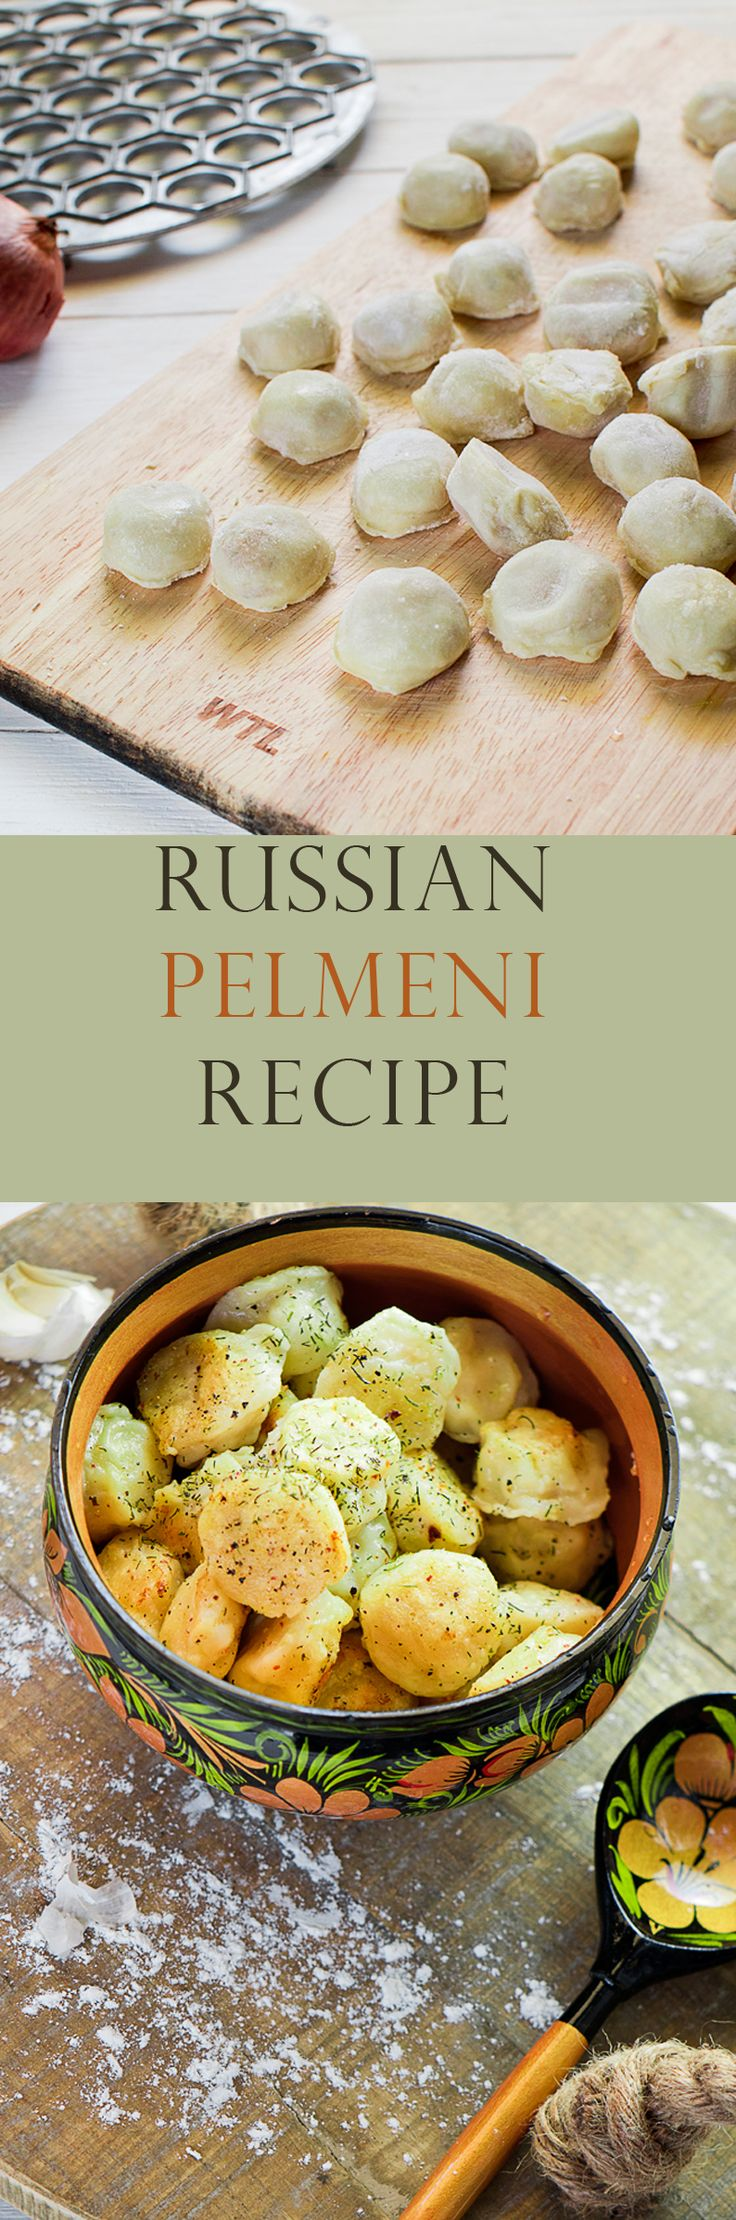 Best recipe for Russian Pelmeni